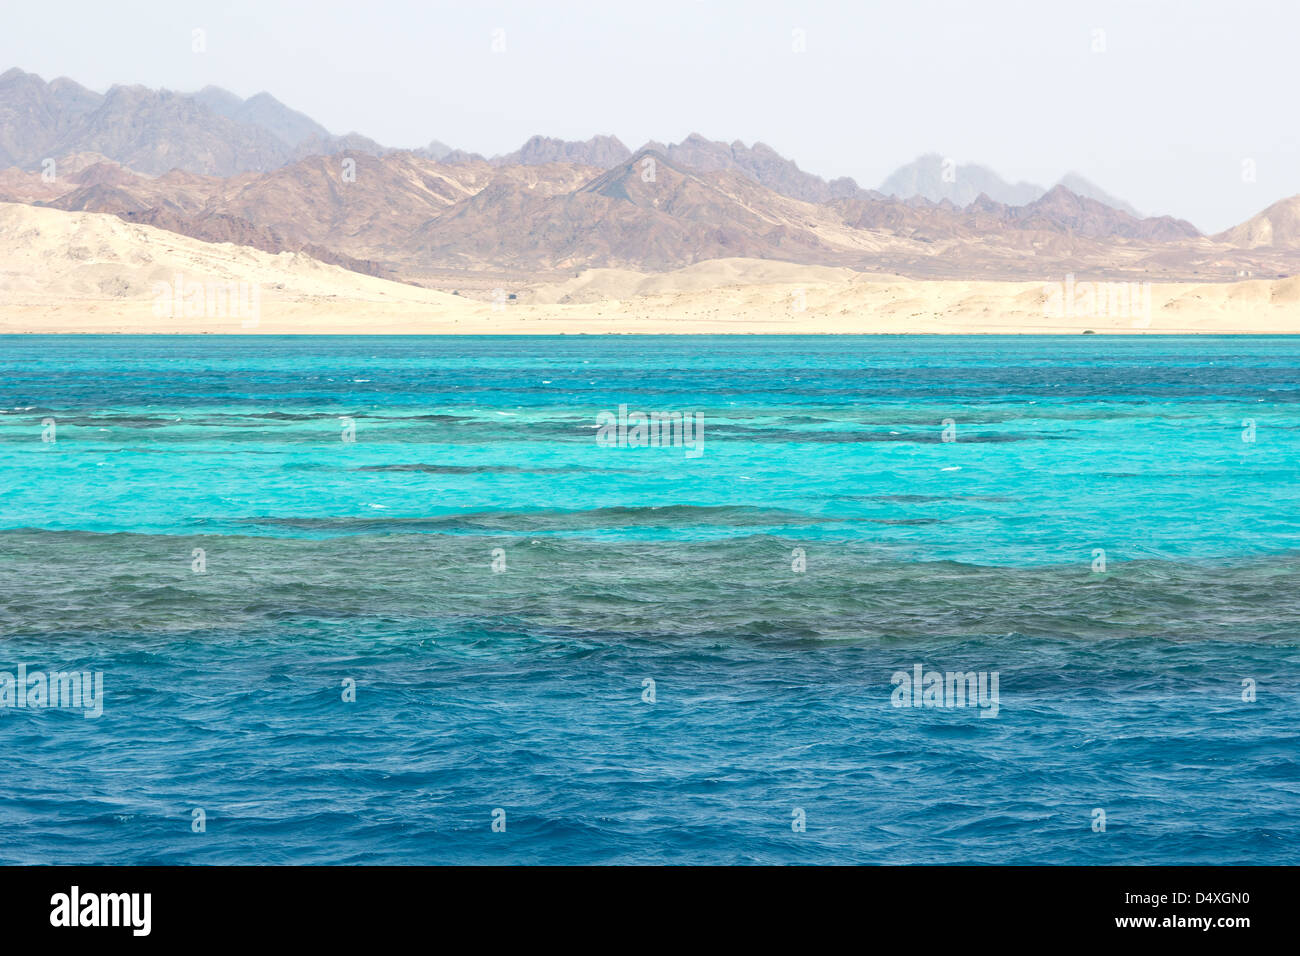 Ras Mohammed in the Red Sea - Stock Image